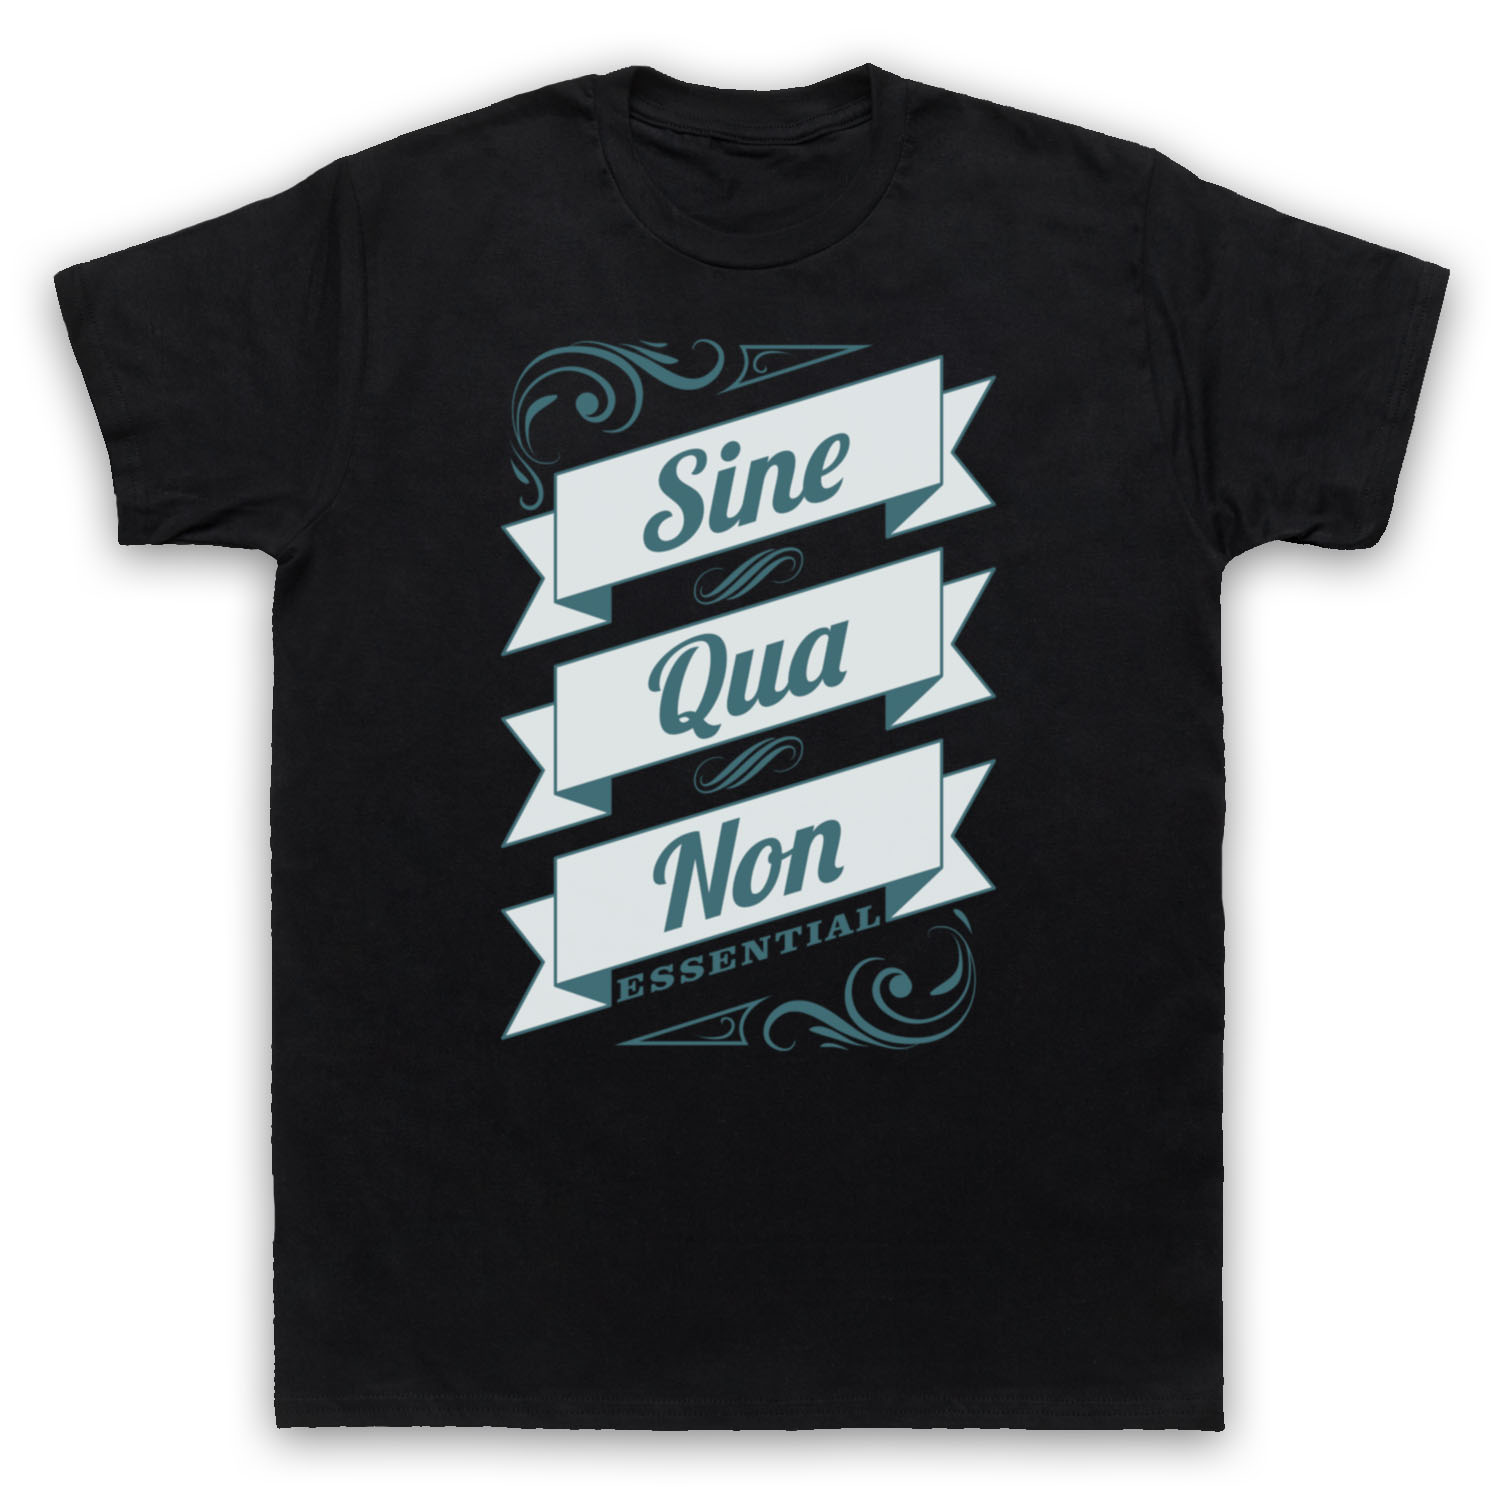 SINE QUA NON ESSENTIAL LATIN PHRASE QUOTE MENS WOMENS KIDS T-SHIRT Short Sleeve Hip Hop Tee T Shirt Top Tee image